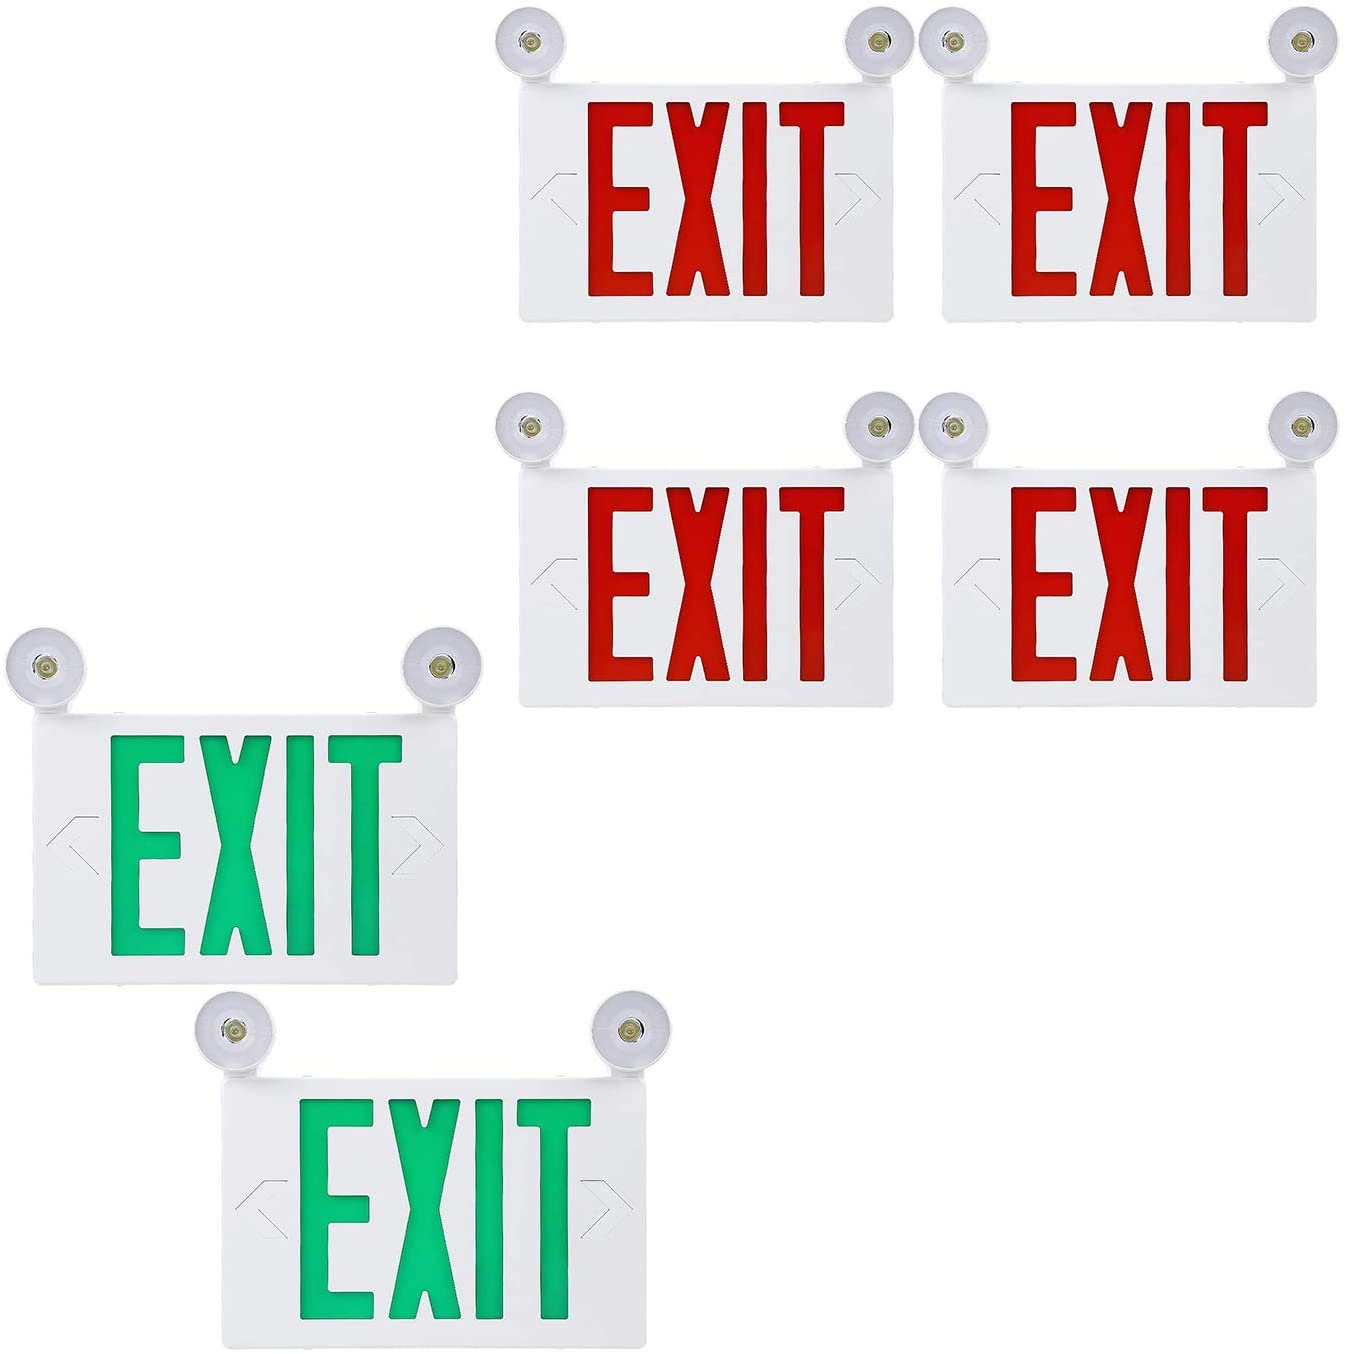 TORCHSTAR LED Green Exit Sign Bundle LED Red Exit Sign, 2-Pack UL Listed Double Face Emergency Light with 2 Adjustable Heads & 4-Pack UL Listed Battery Backup Emergency Light with 2 Adjustable Heads